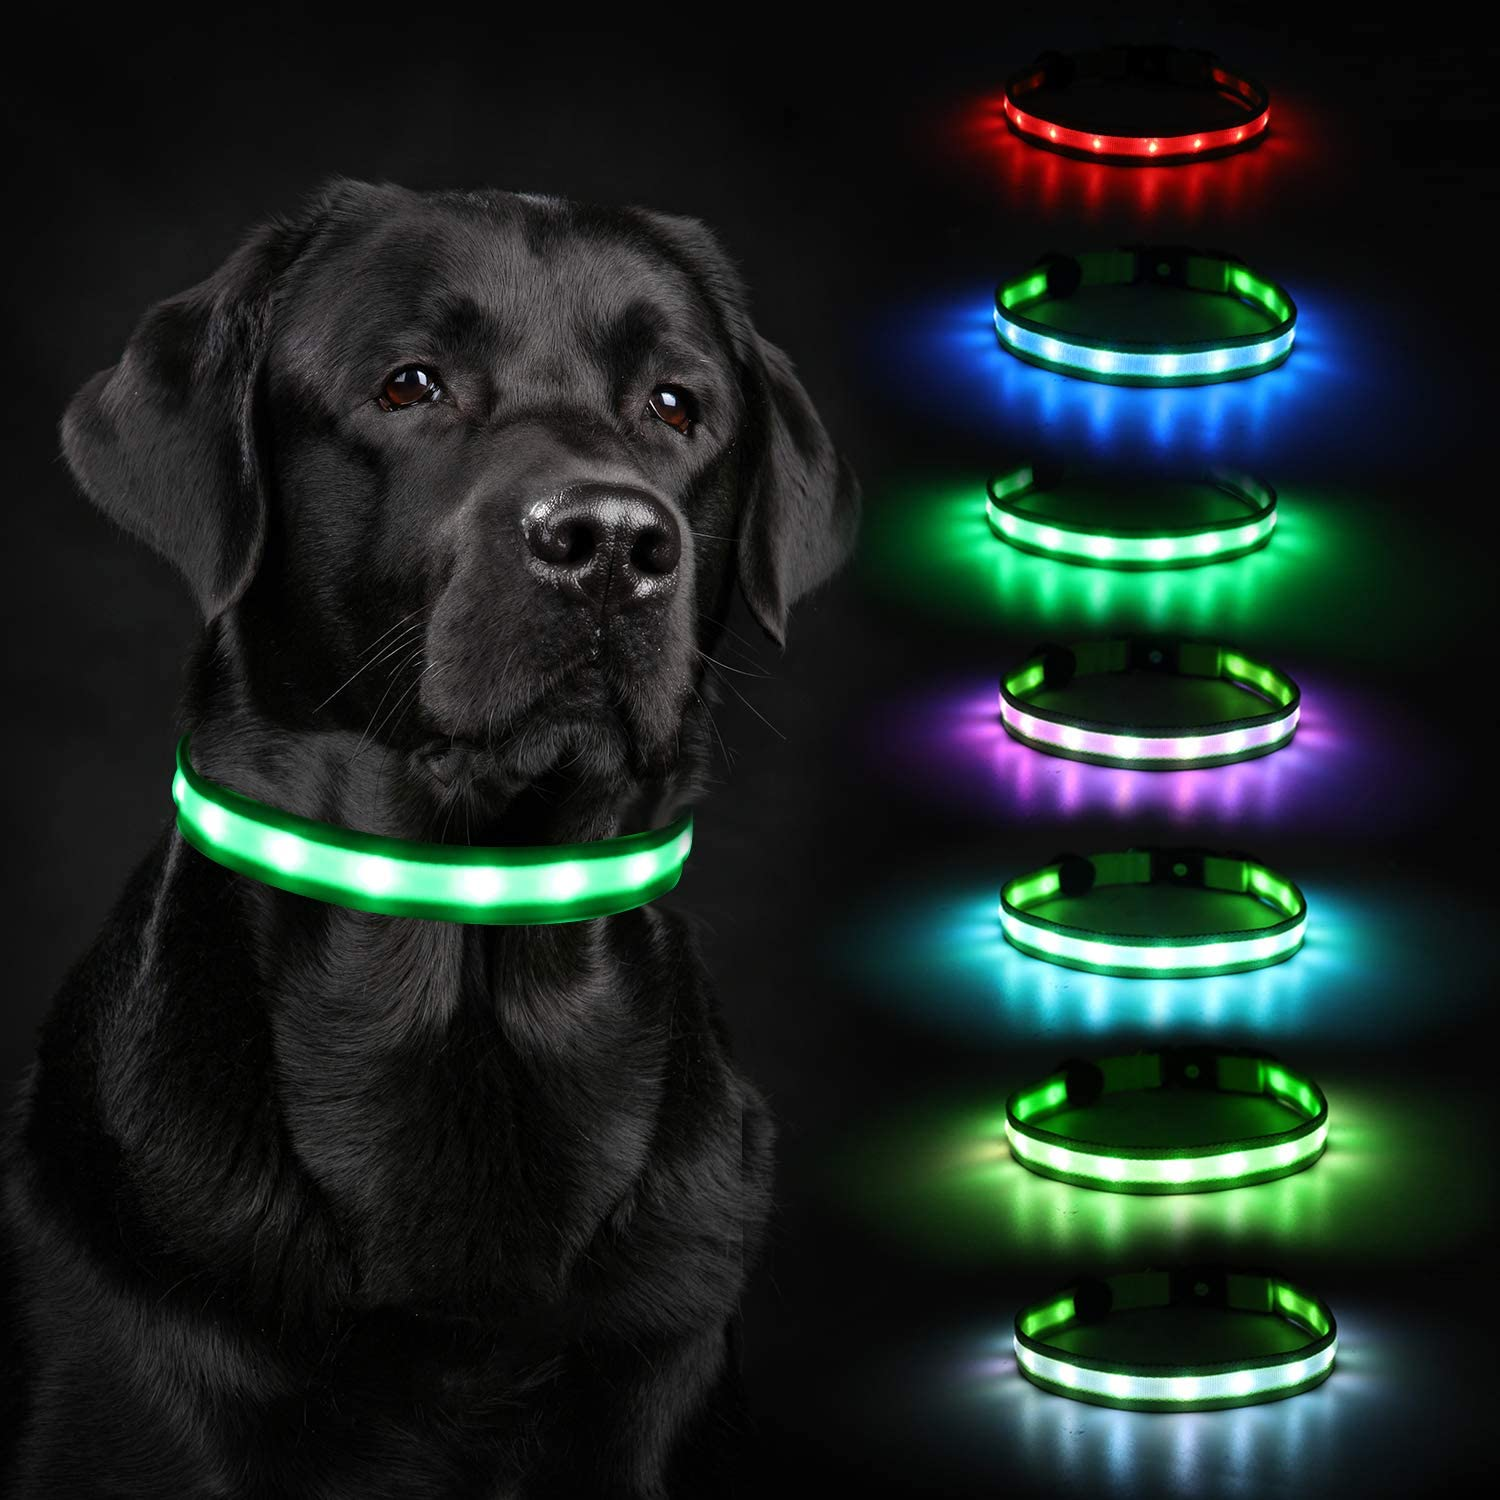 Led Dog Collar Mail order Lights Dealing full price reduction 2021 Newest Recha HAOPINSH